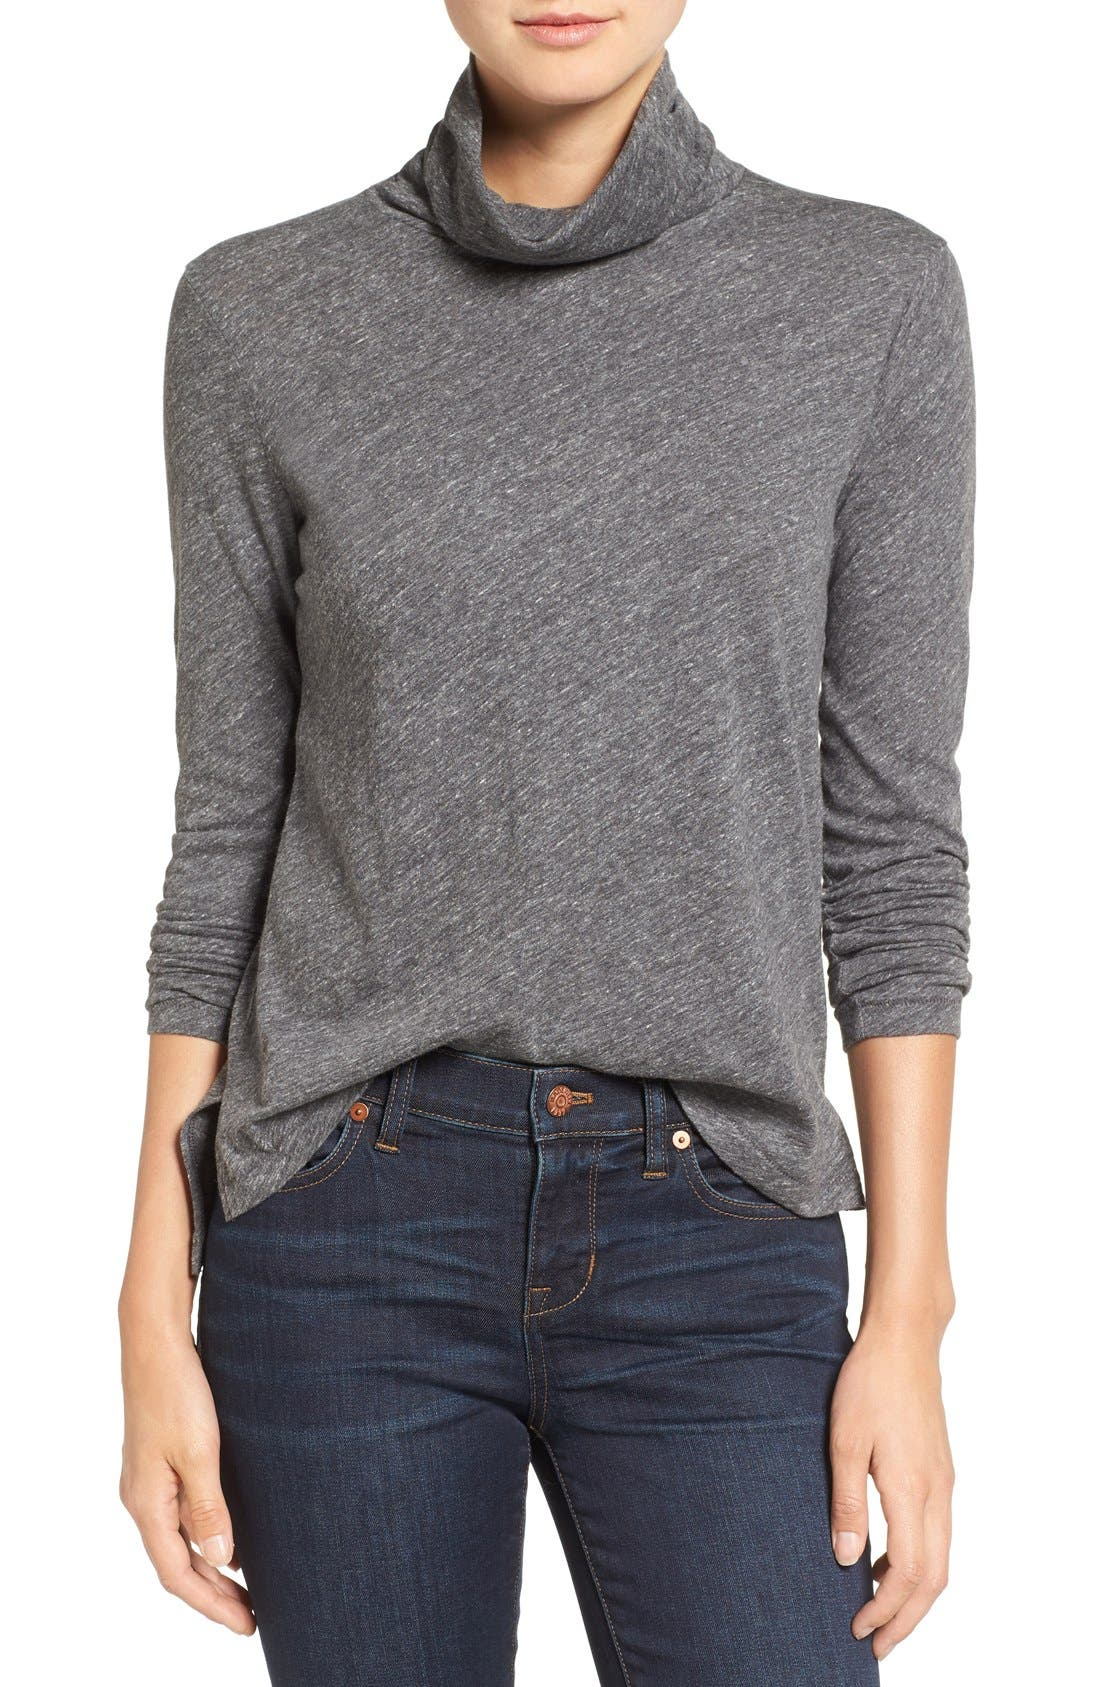 Alternate Image 1 Selected - Madewell Whisper Cotton Turtleneck Top